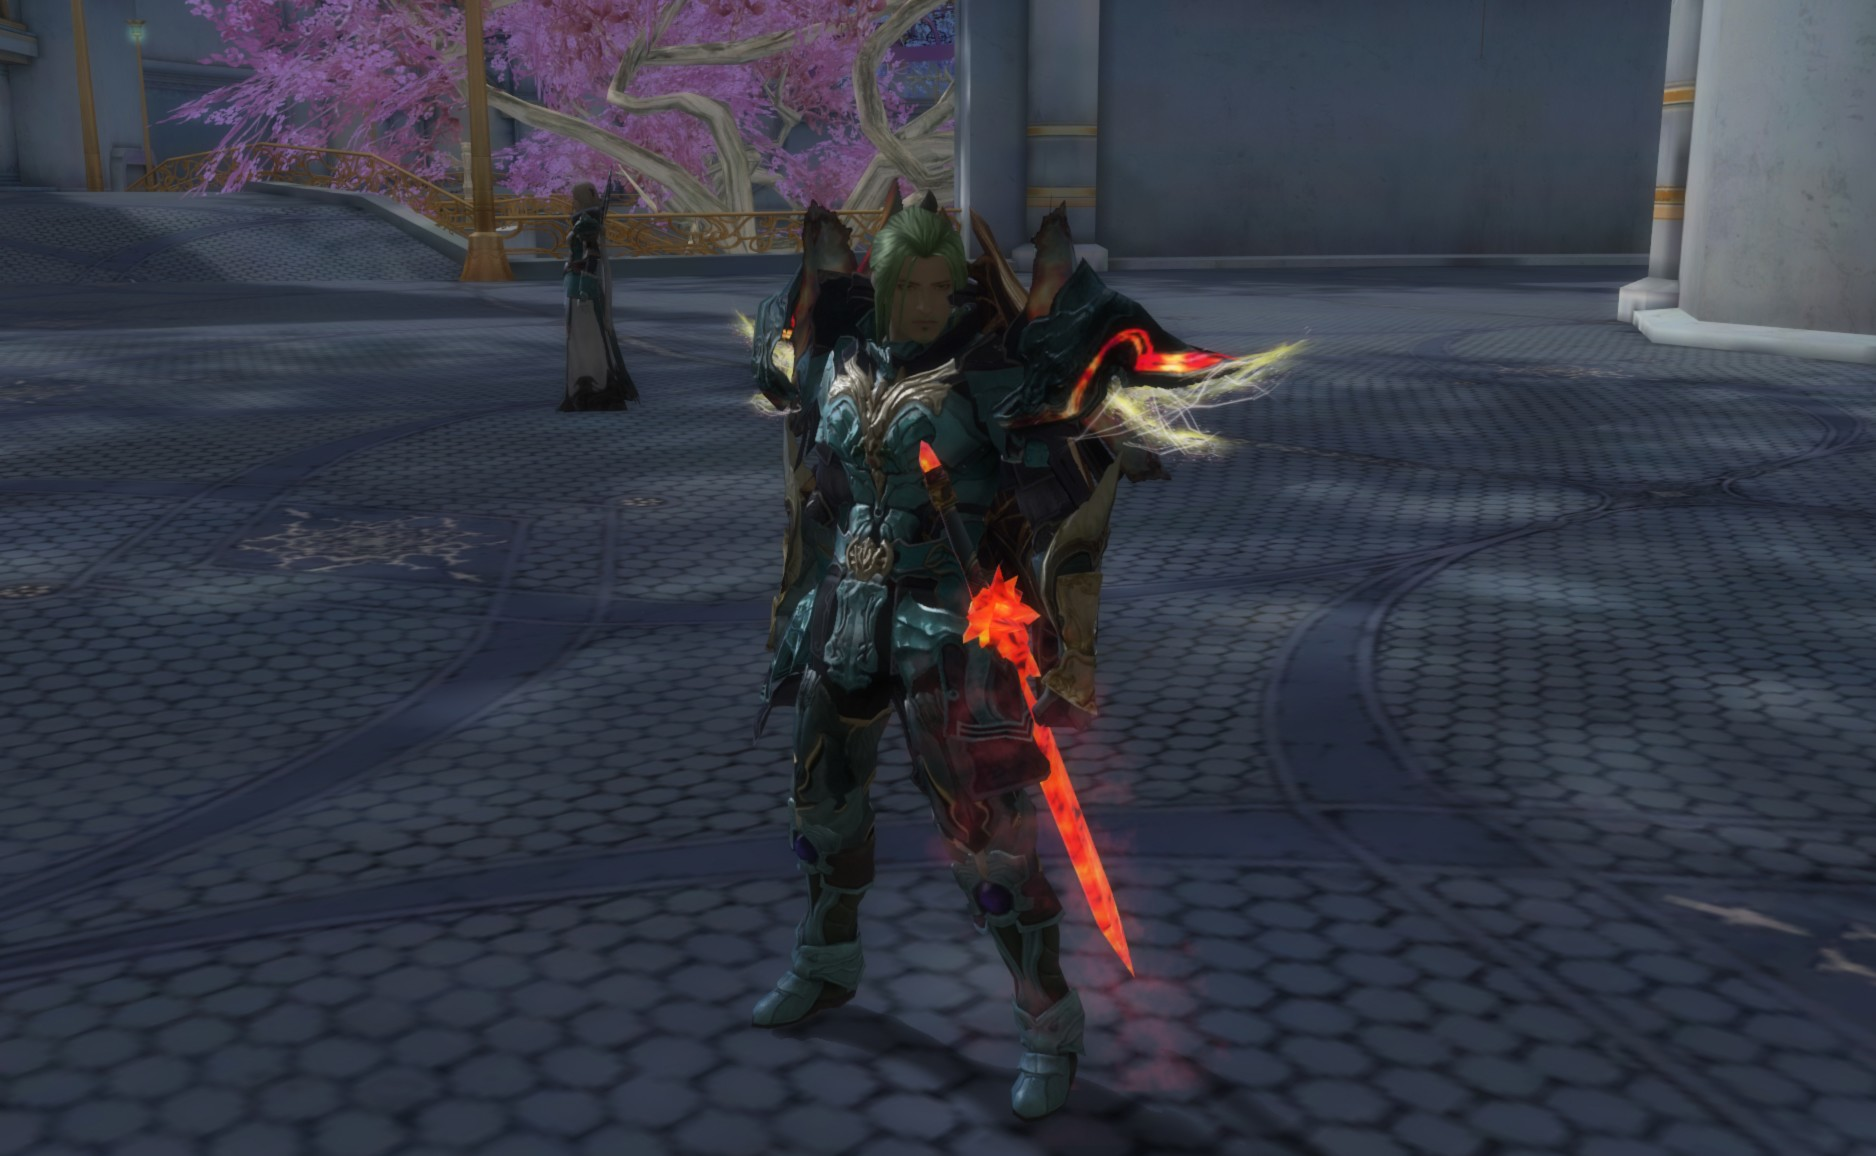 Aion - Some of the armor is just crazy. The glowing effects on the shoulders are animated really neat